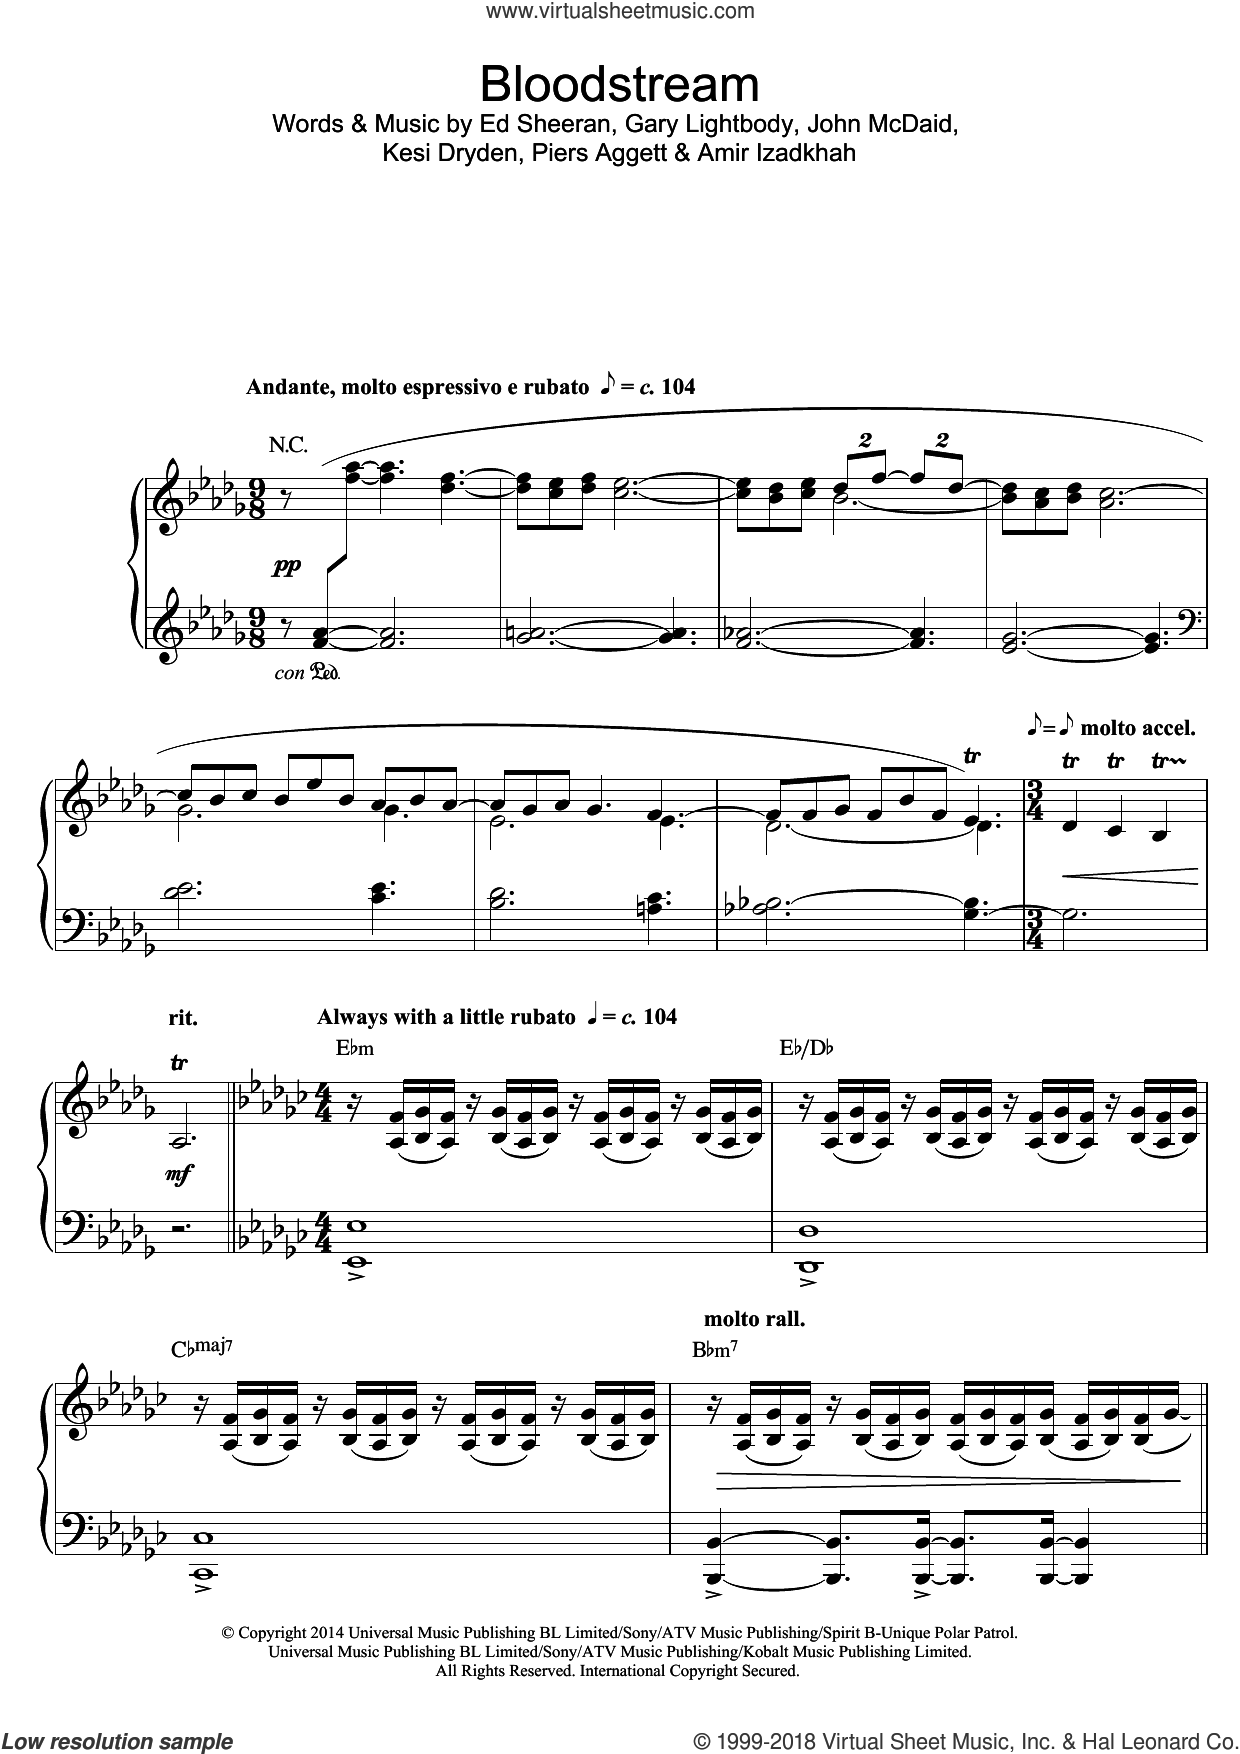 Bloodstream sheet music for piano solo by Tokio Myers, Amir Izadkhah, Ed Sheeran, Gary Lightbody, John McDaid, Kesi Dryden and Piers Aggett, classical score, intermediate skill level